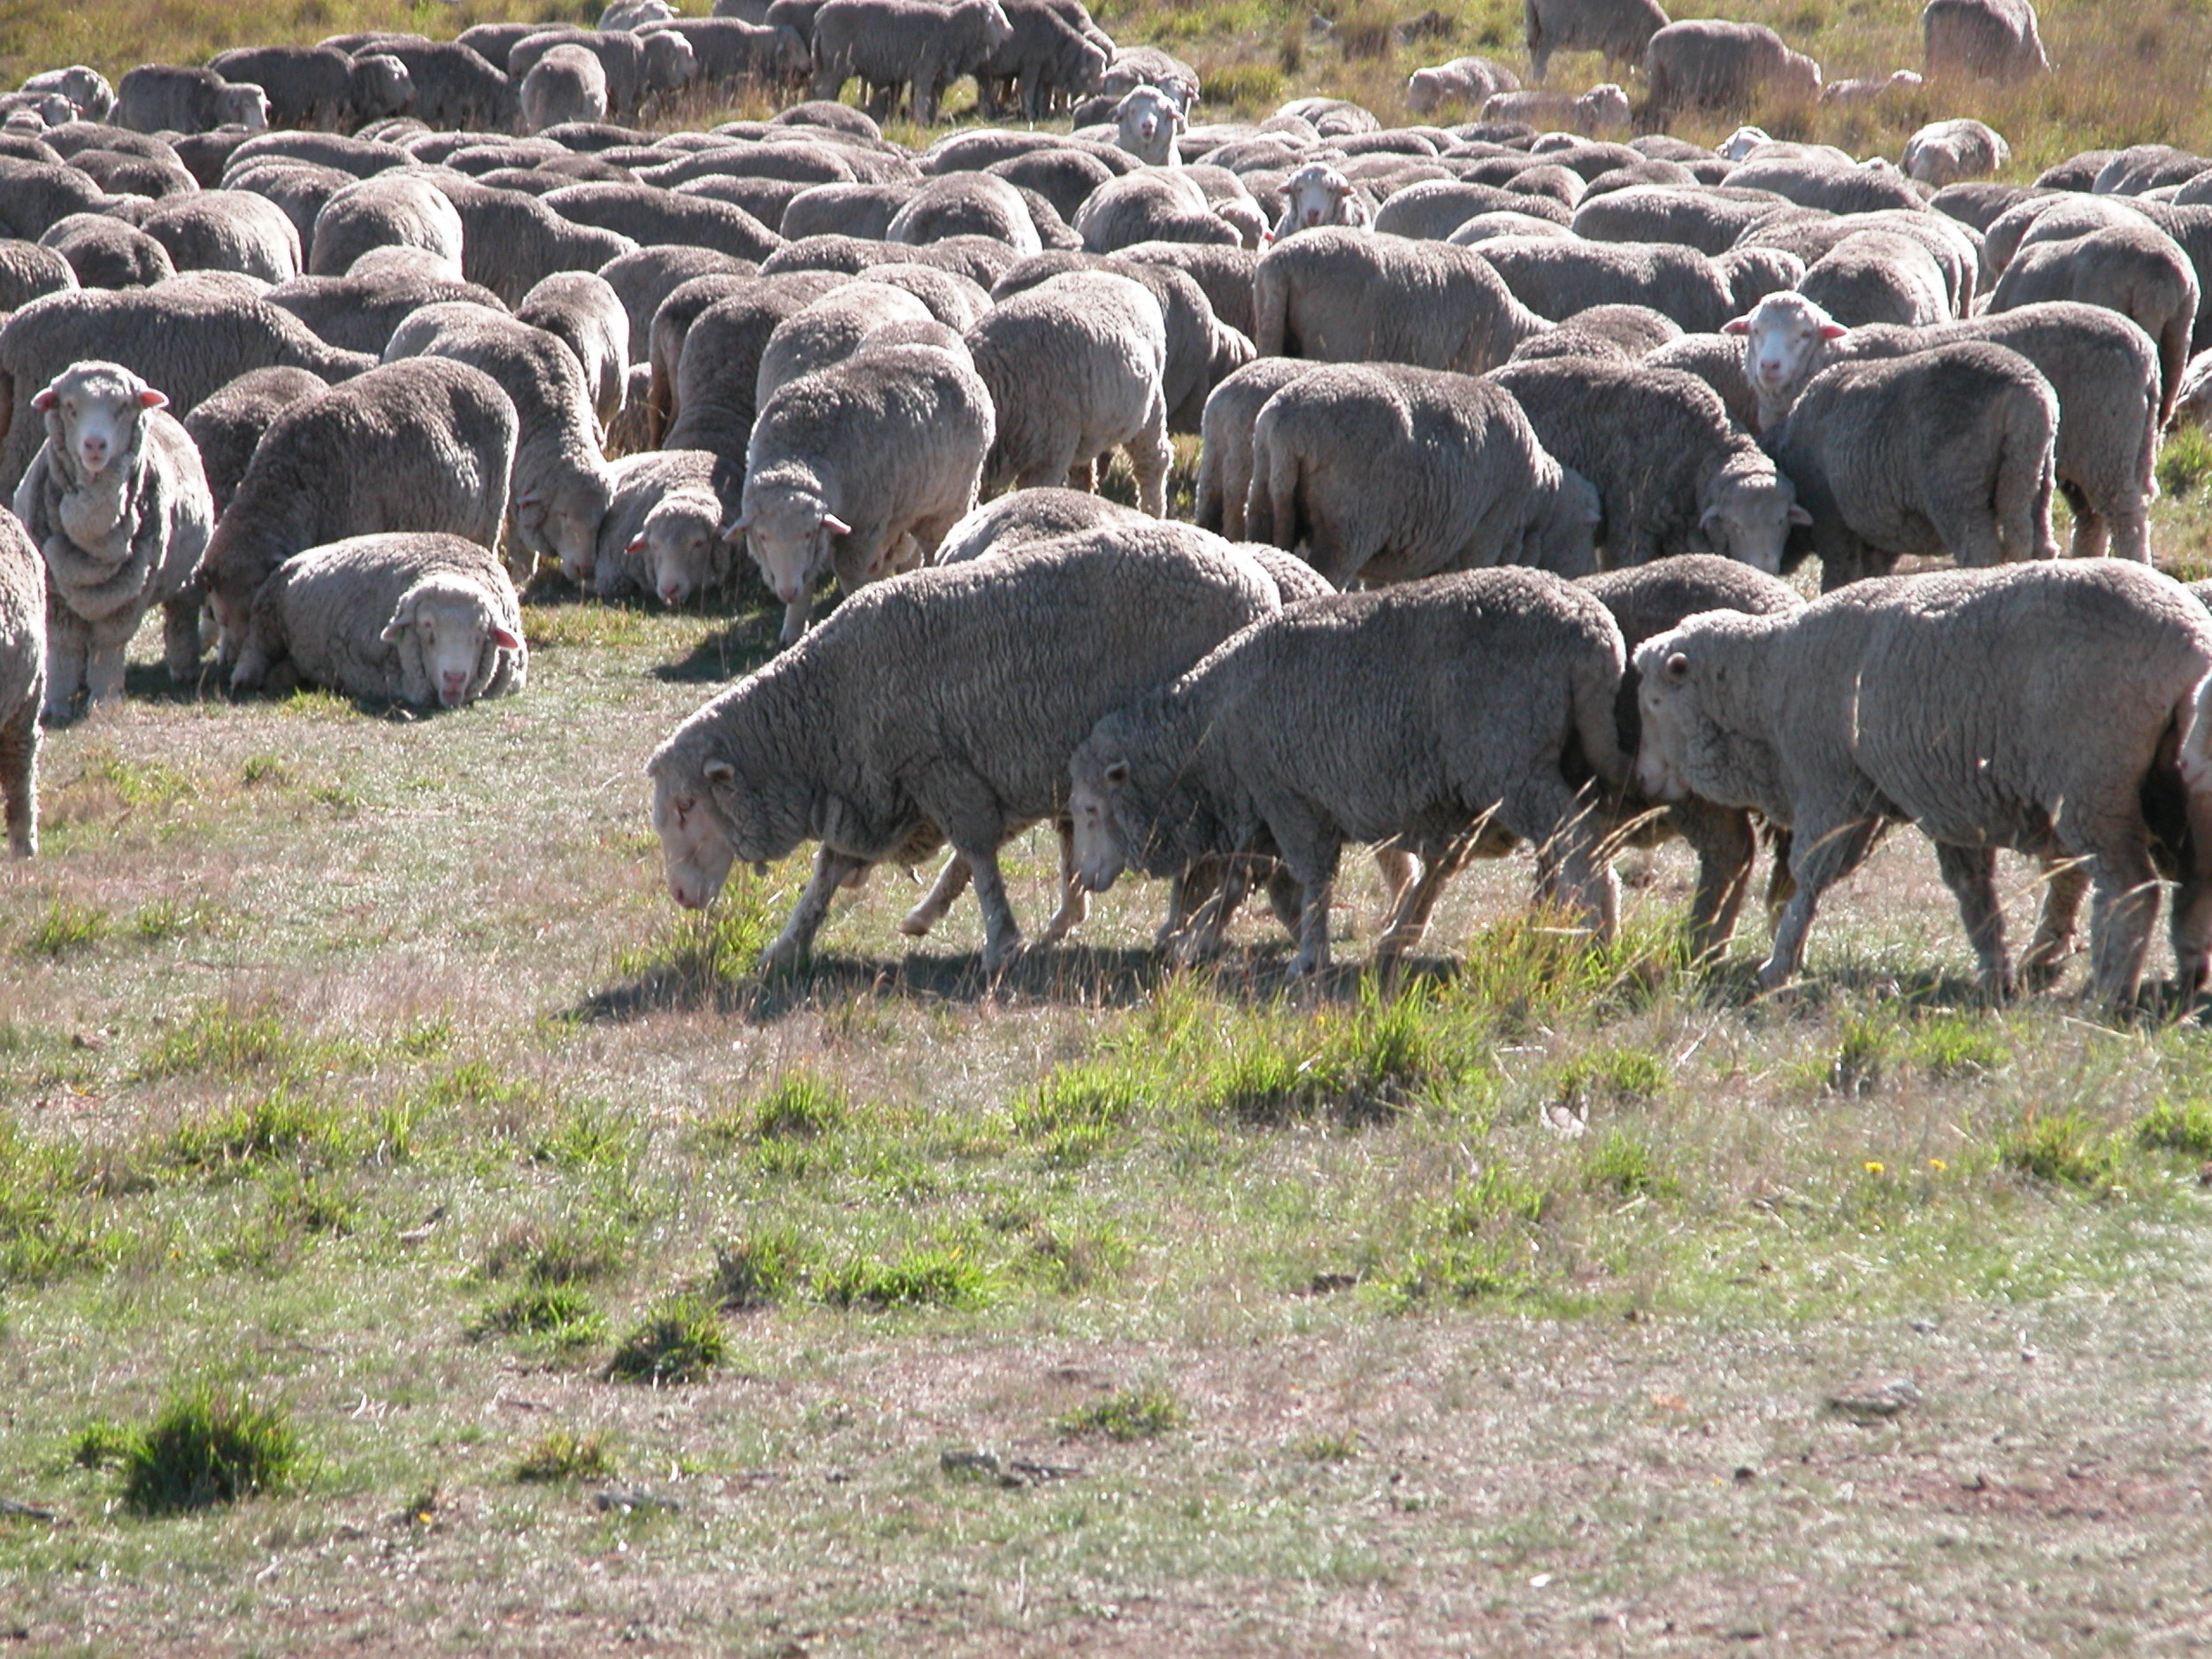 Hillary and her daughters starting one of their rounds through the resting flock.